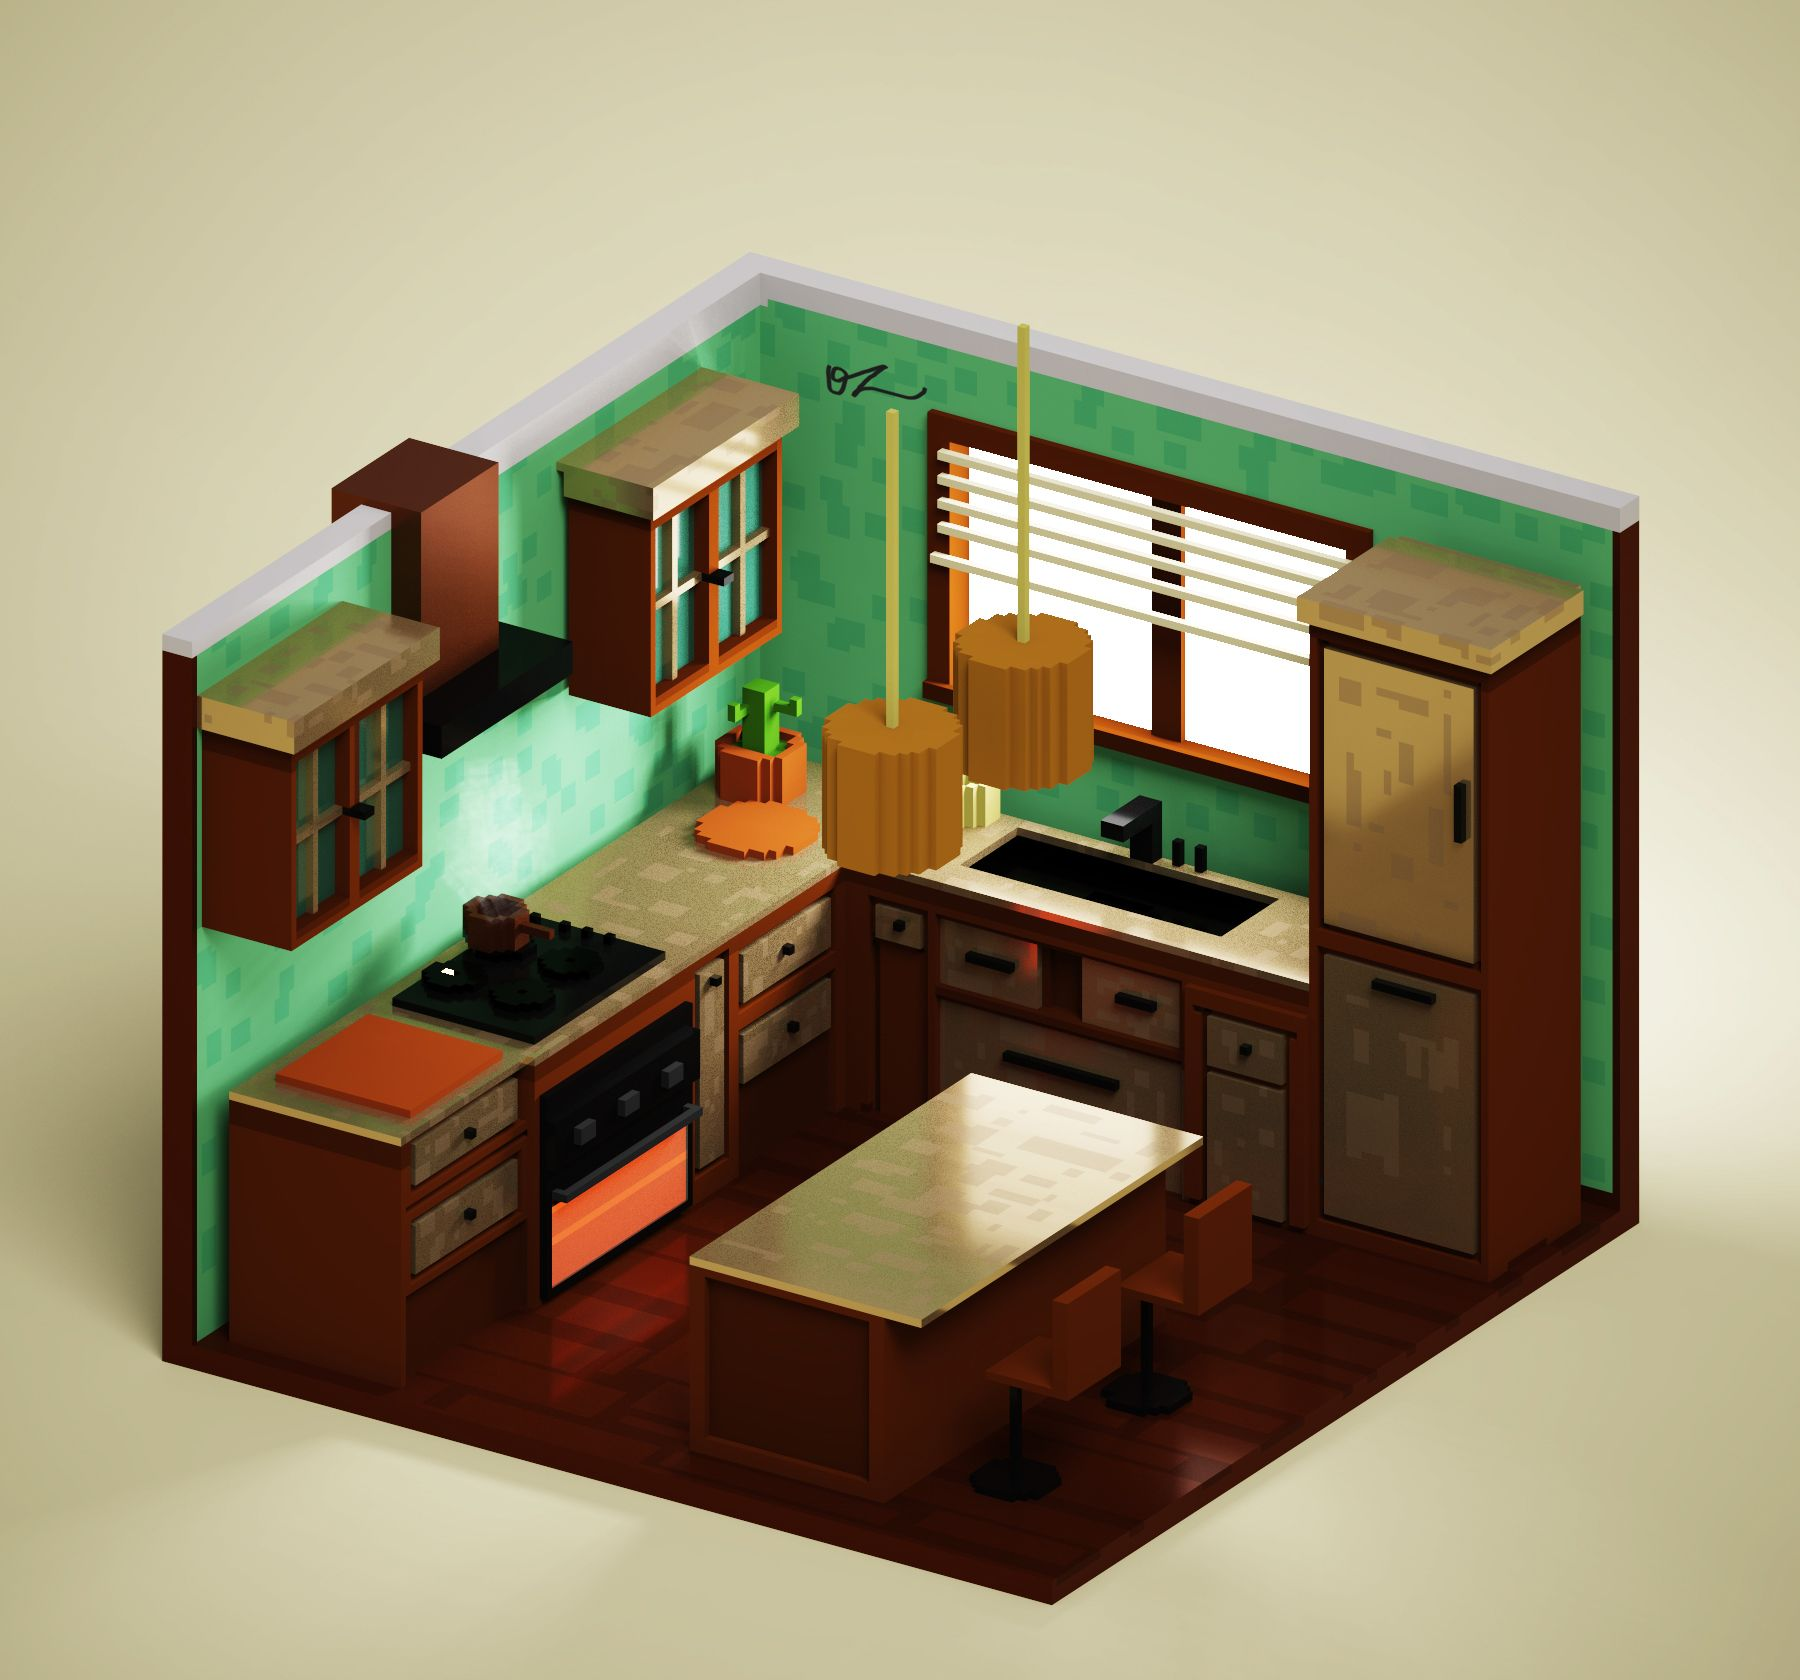 Kitchen Isometric Cozinha Feito No Magicavoxel Por Oz Rodrigues House Design Drawing Kitchen Visualizer Game Room Design